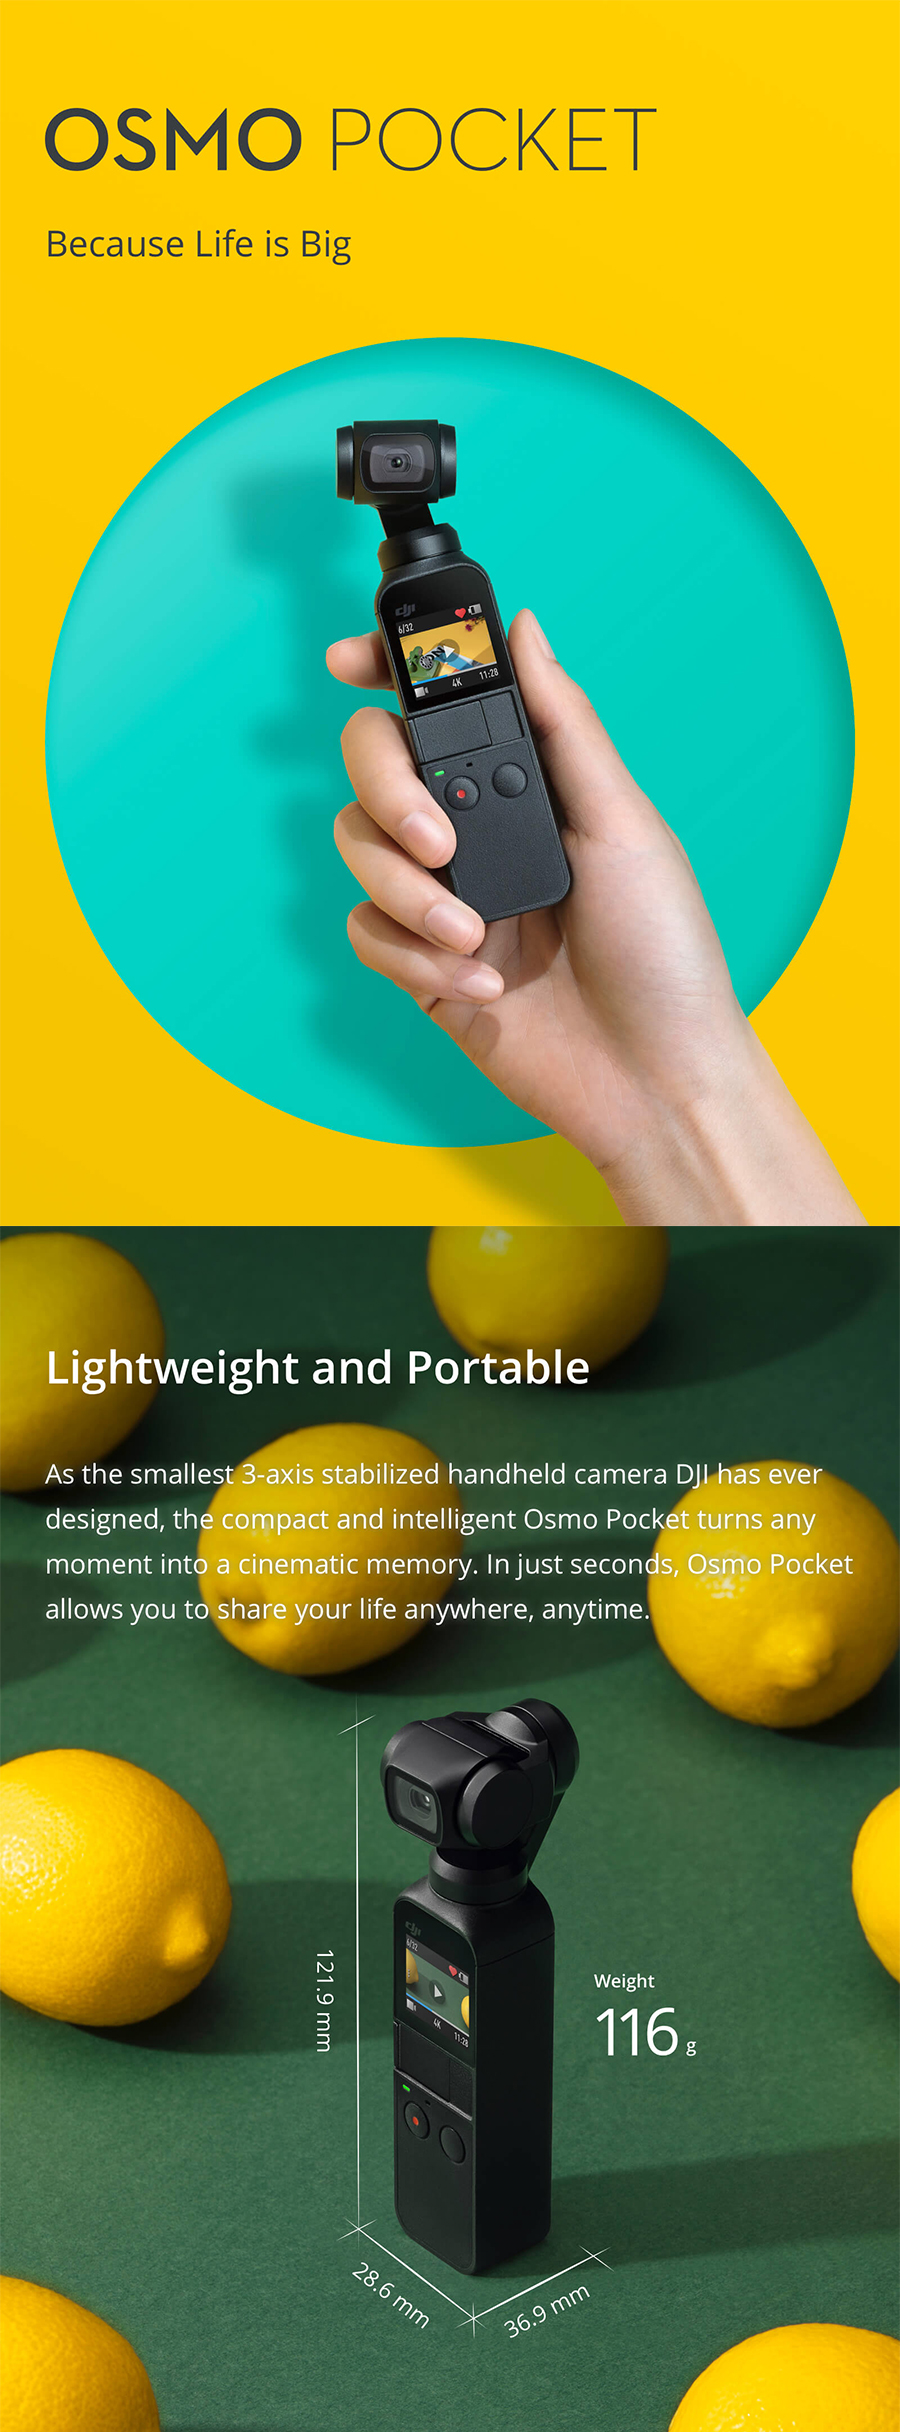 DJI Osmo Pocket Smallest 3-Axis Handheld Gimbal Stabilizer FPV 1/2.3 Sensor Camera 4K 60fps Video 12 MP 140-min Battery Life